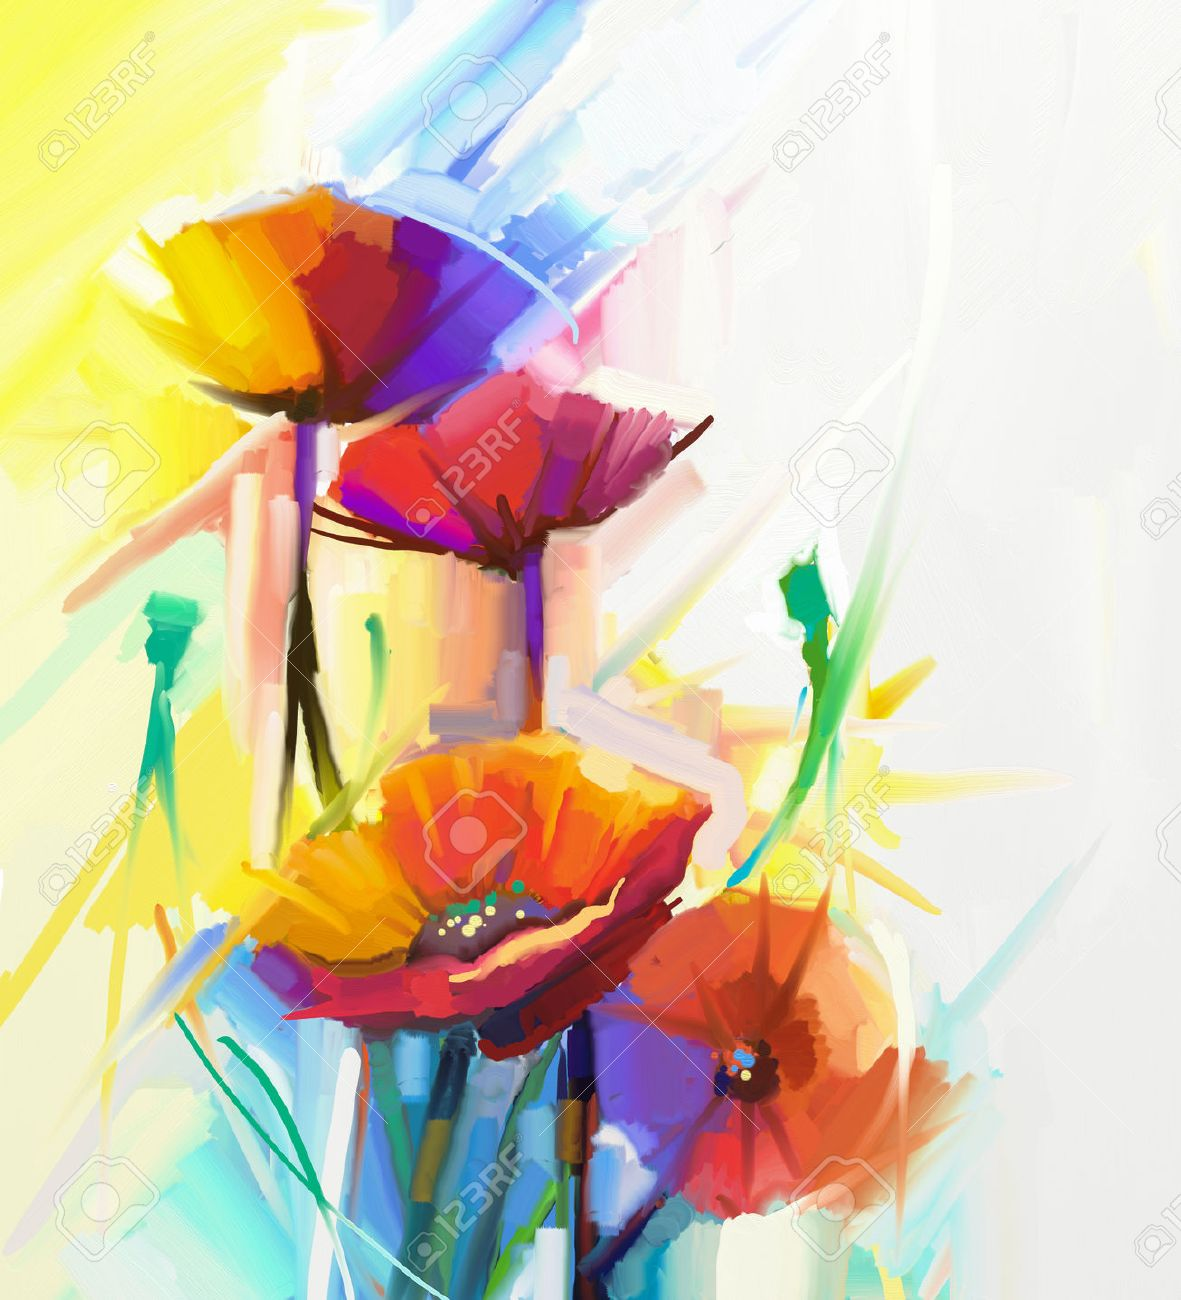 Abstract Oil Painting Of Spring Flower Still Life Yellow Pink And Red Poppy